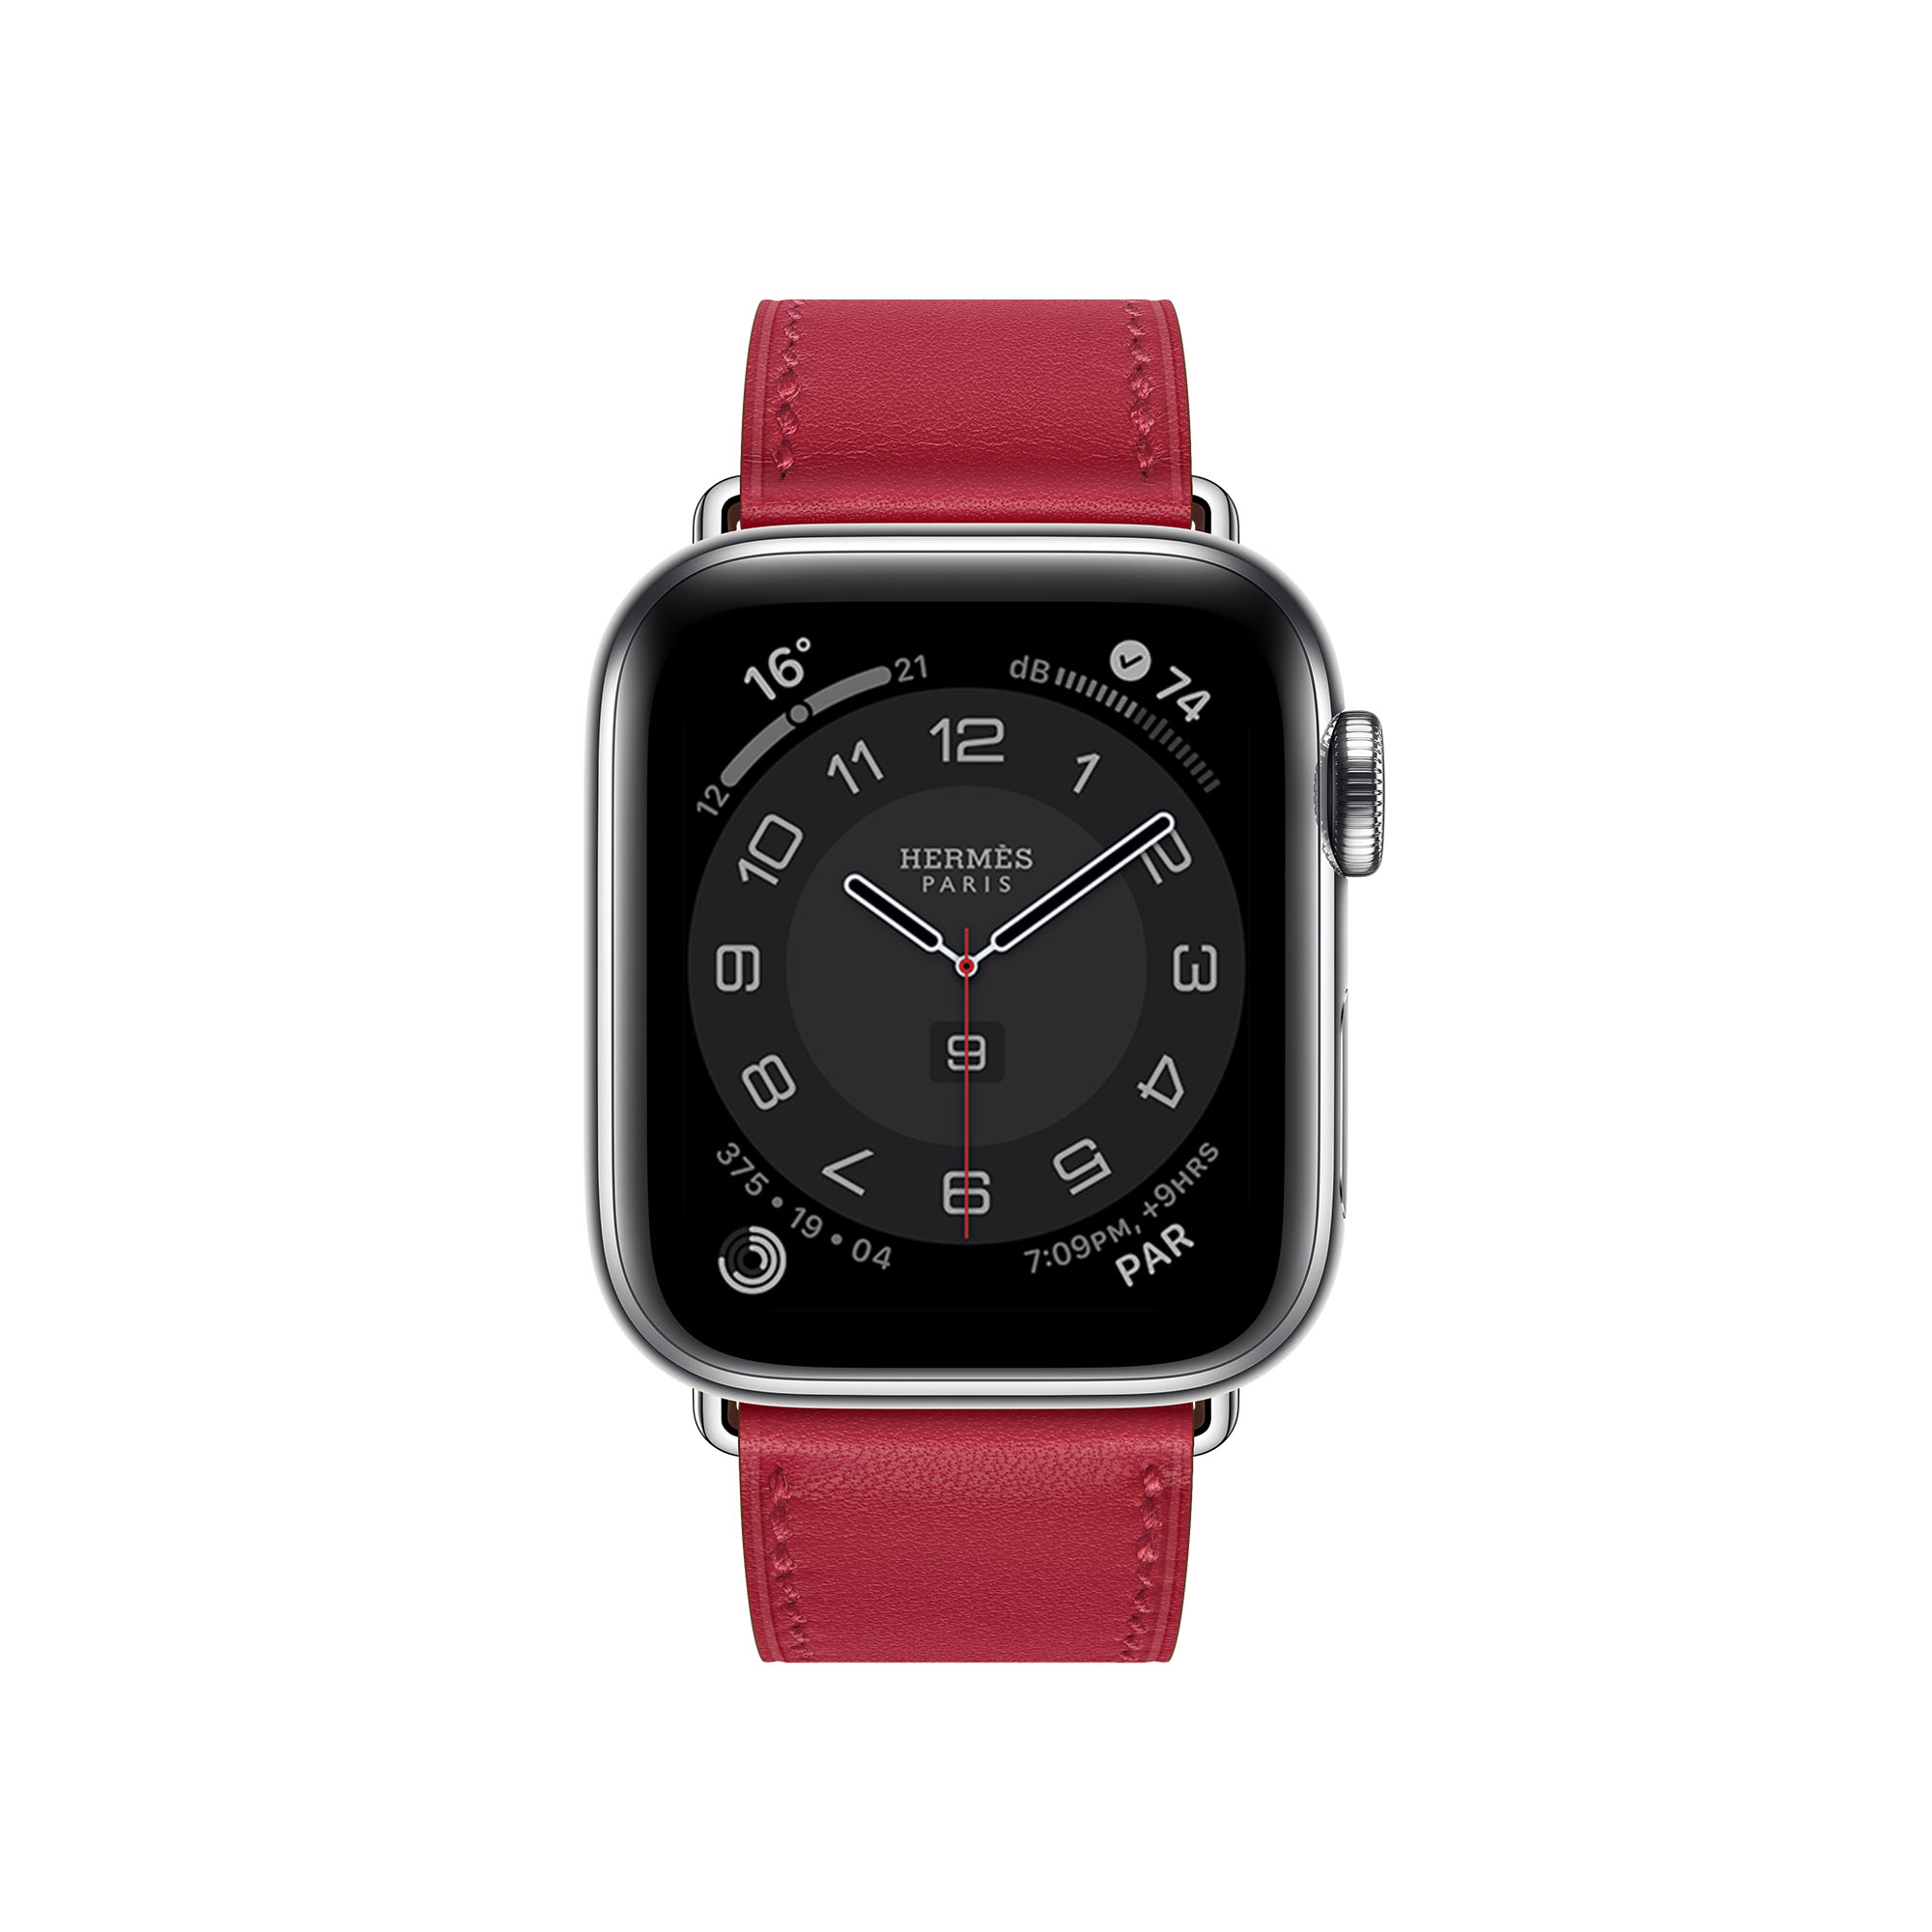 28 Unisex Valentine's Day Gifts: Hermès Series 6 case & Band Apple Watch Hermes Single Tour 44 mm